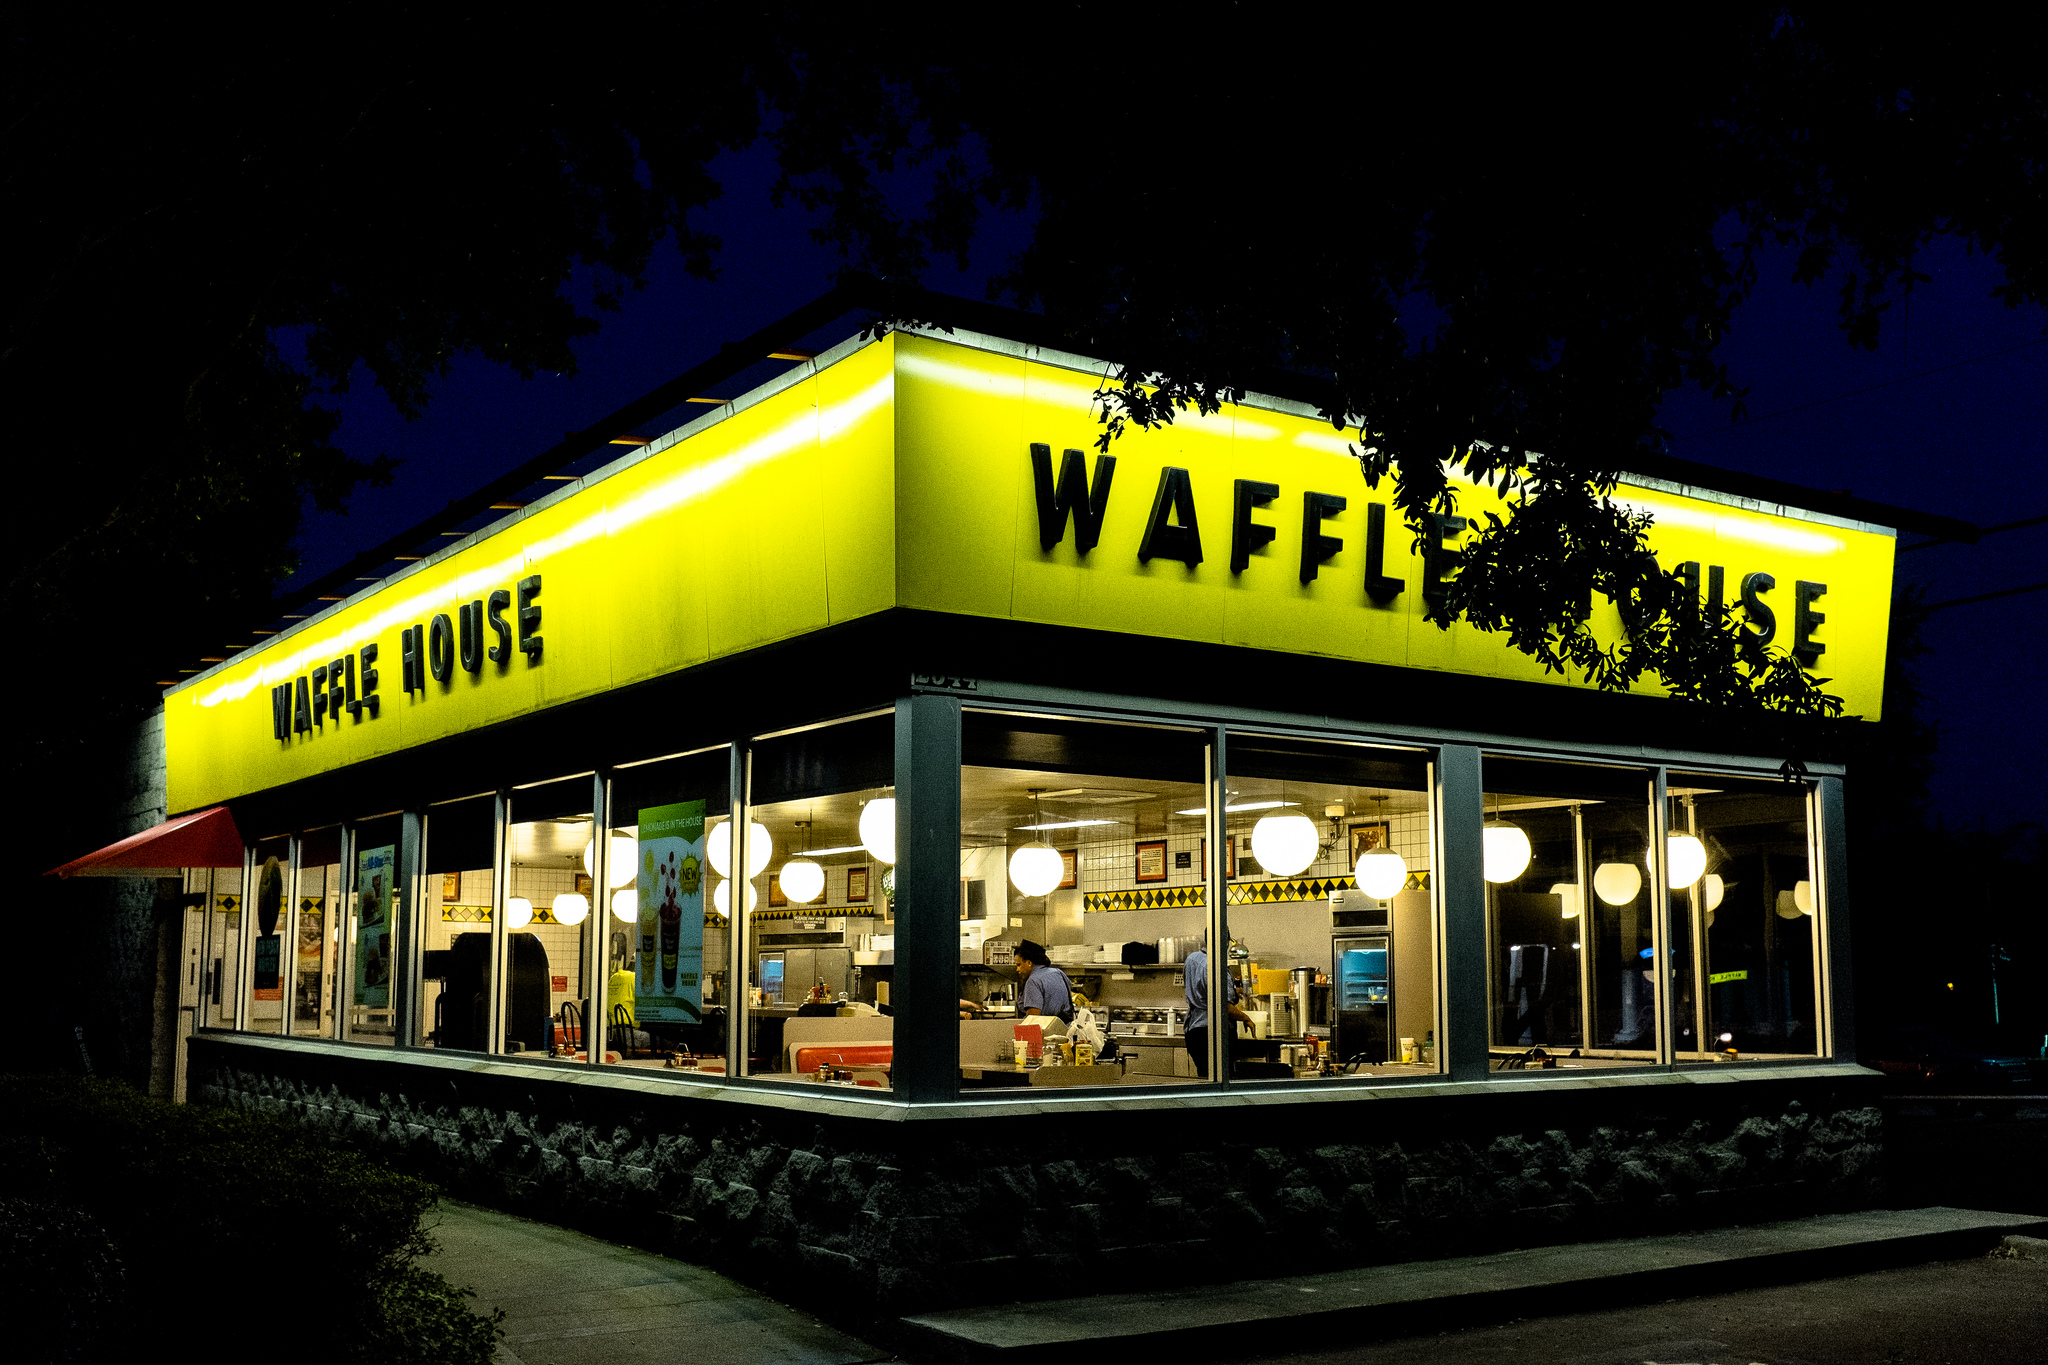 Customer Surprises Waffle House Waitress With $600 Tip